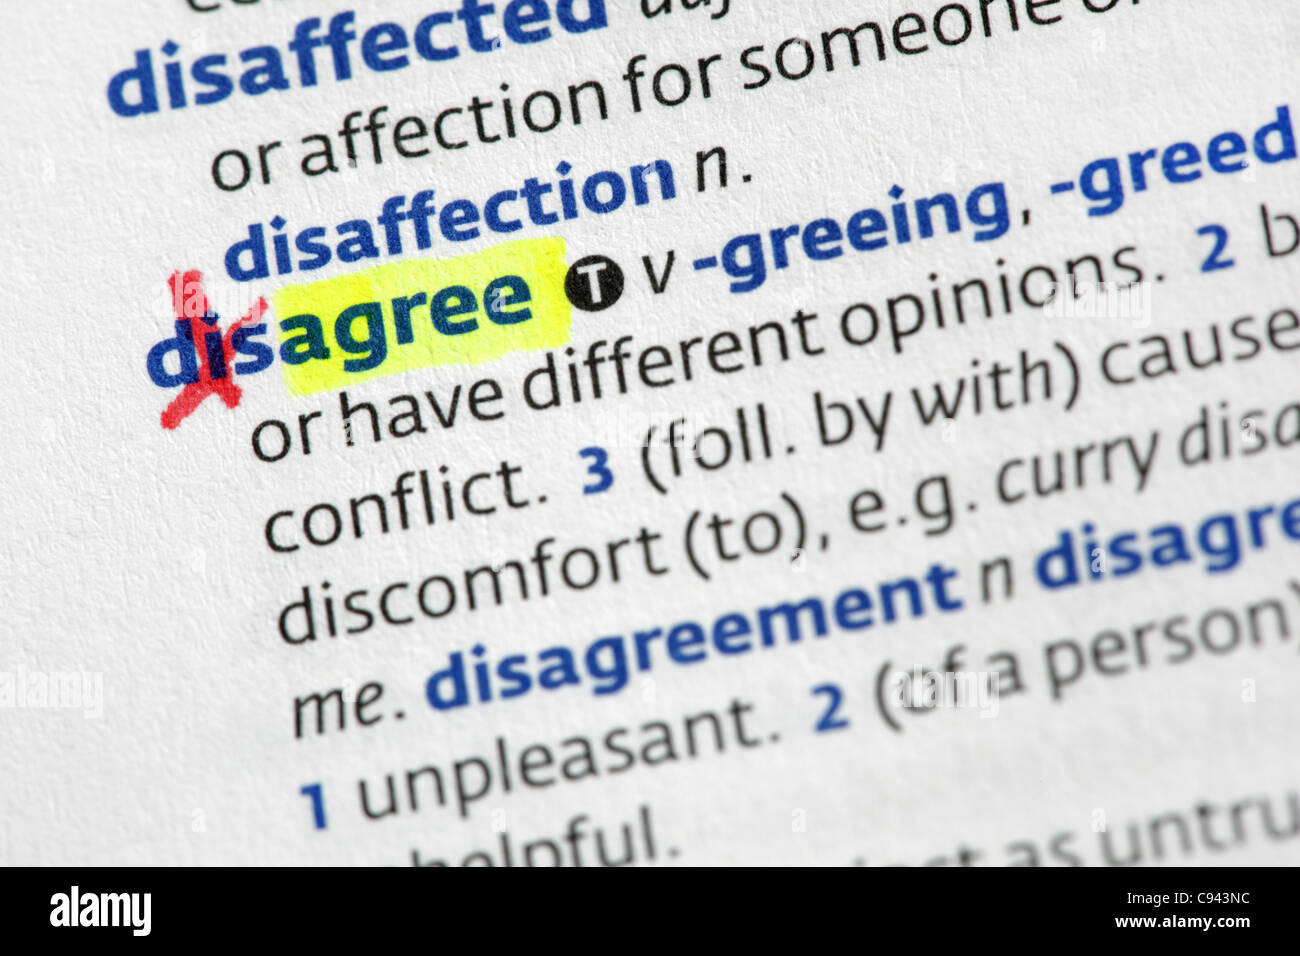 Agreement from disagreement - Stock Image